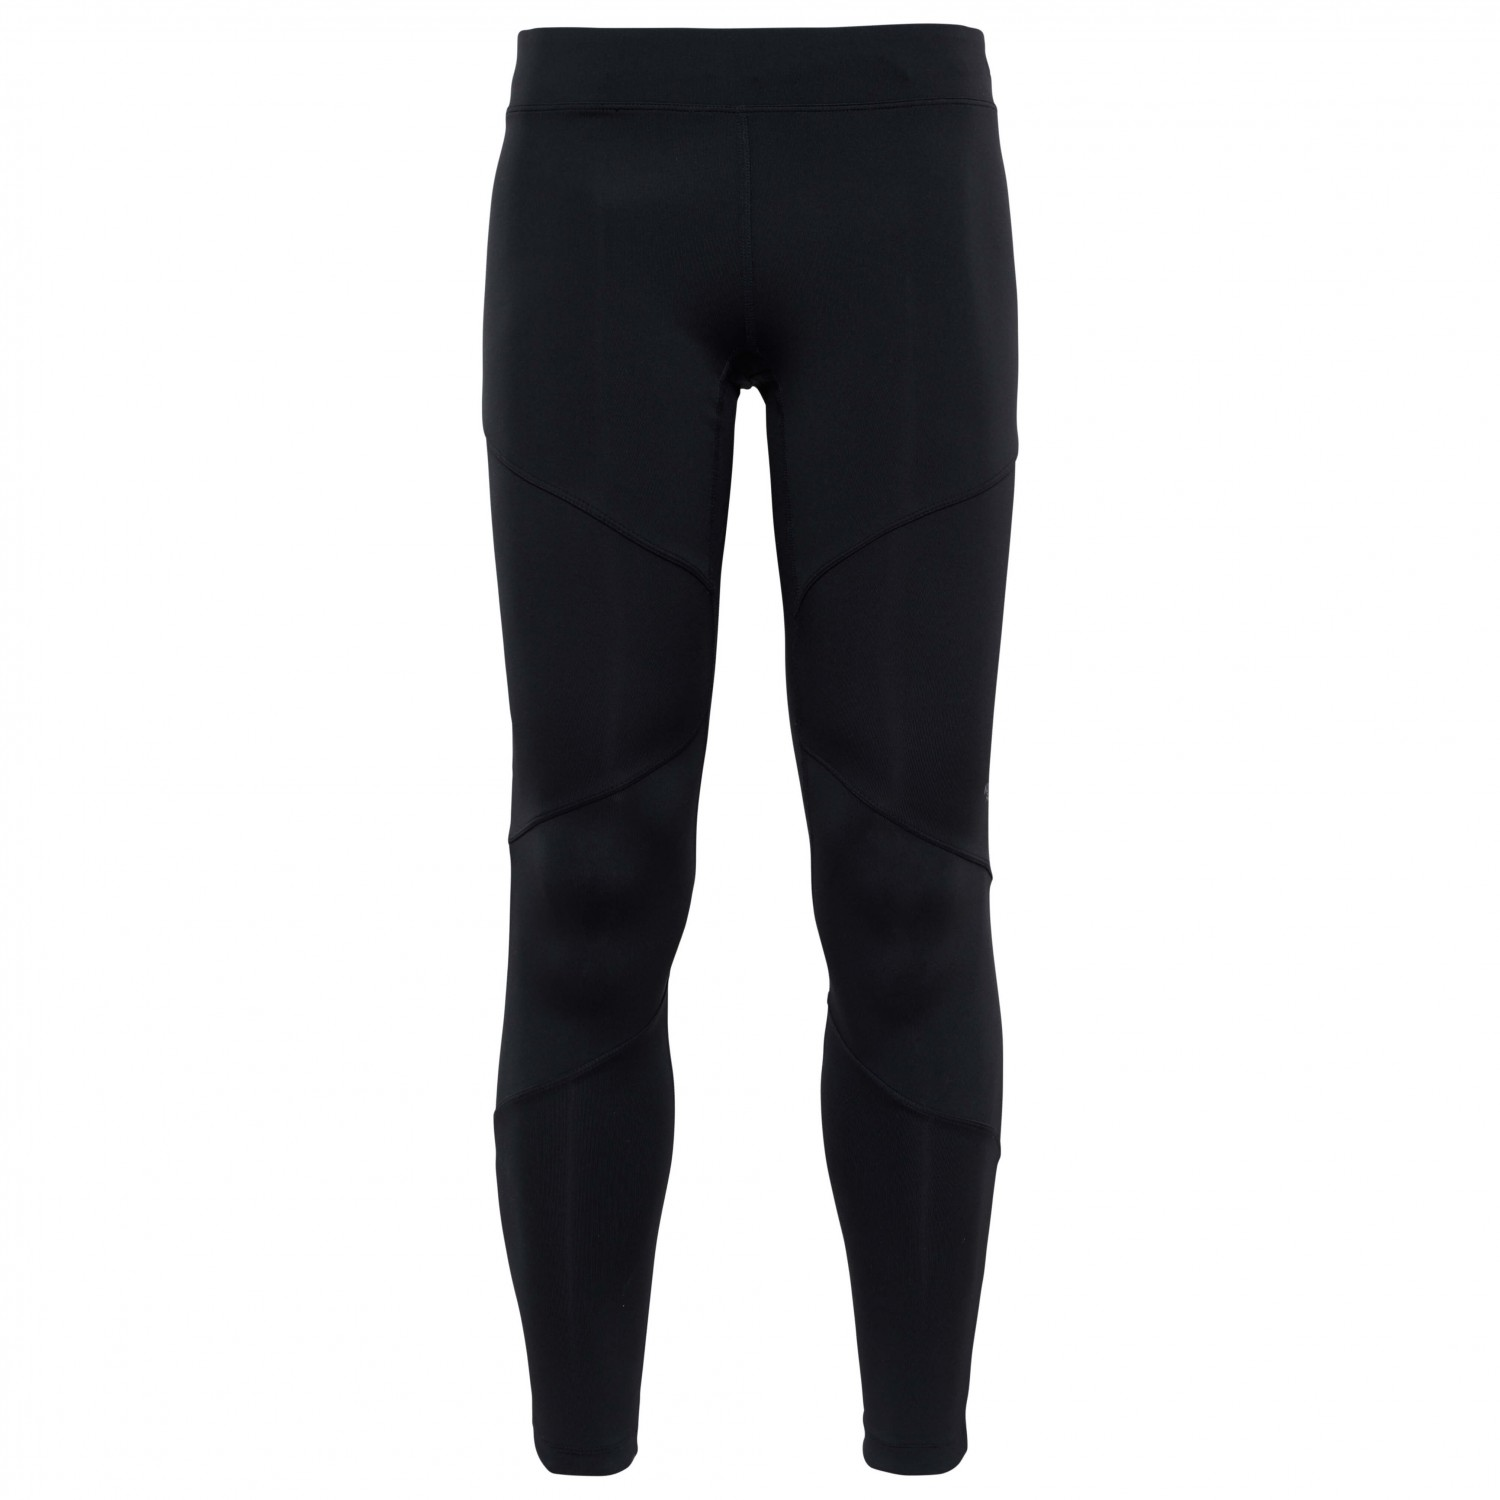 f8b718f4ccd0b The North Face Motus Tight III - Running Trousers Women's | Buy online |  Alpinetrek.co.uk